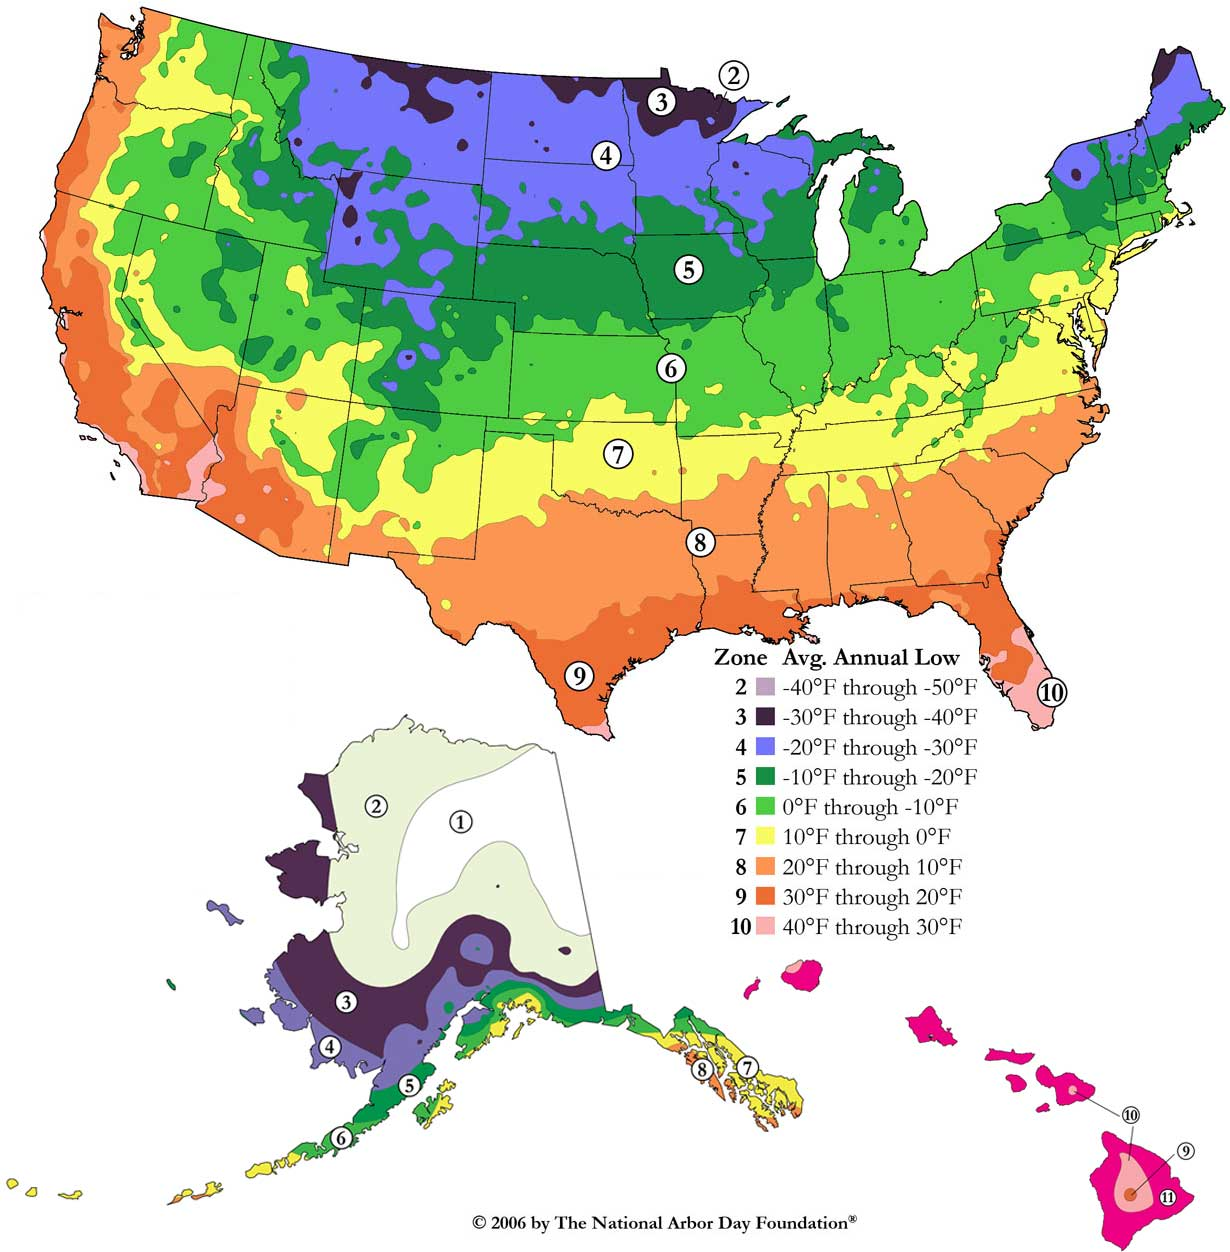 Plant Hardiness Zone Map For North America Maps For Growing Zones - Map of growing zones in the us